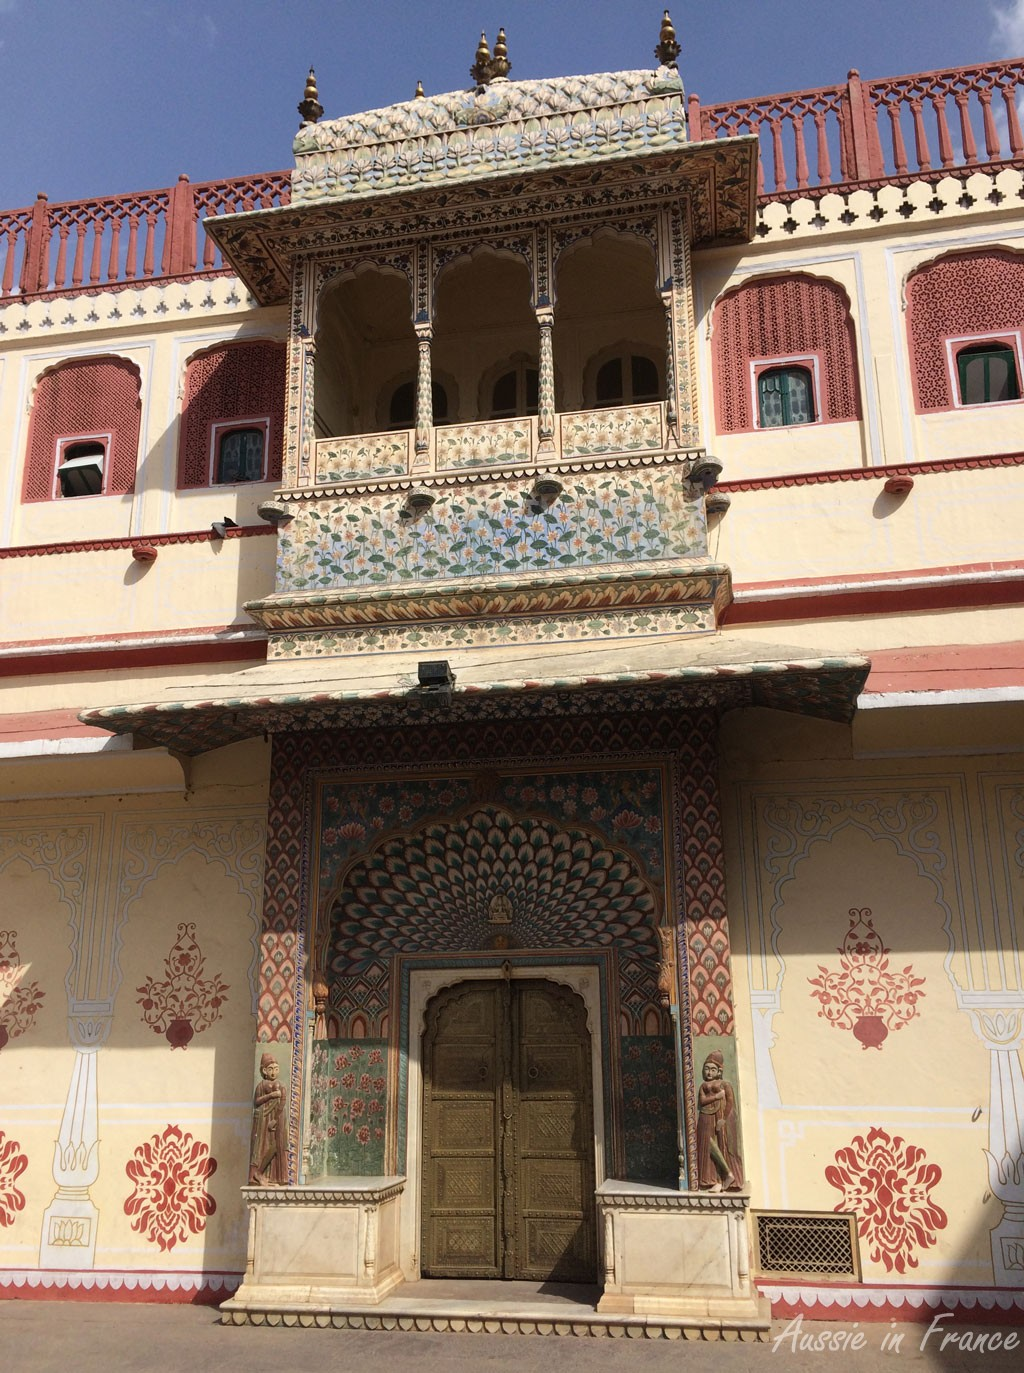 Close-up of one of the four entrances in the City Palace